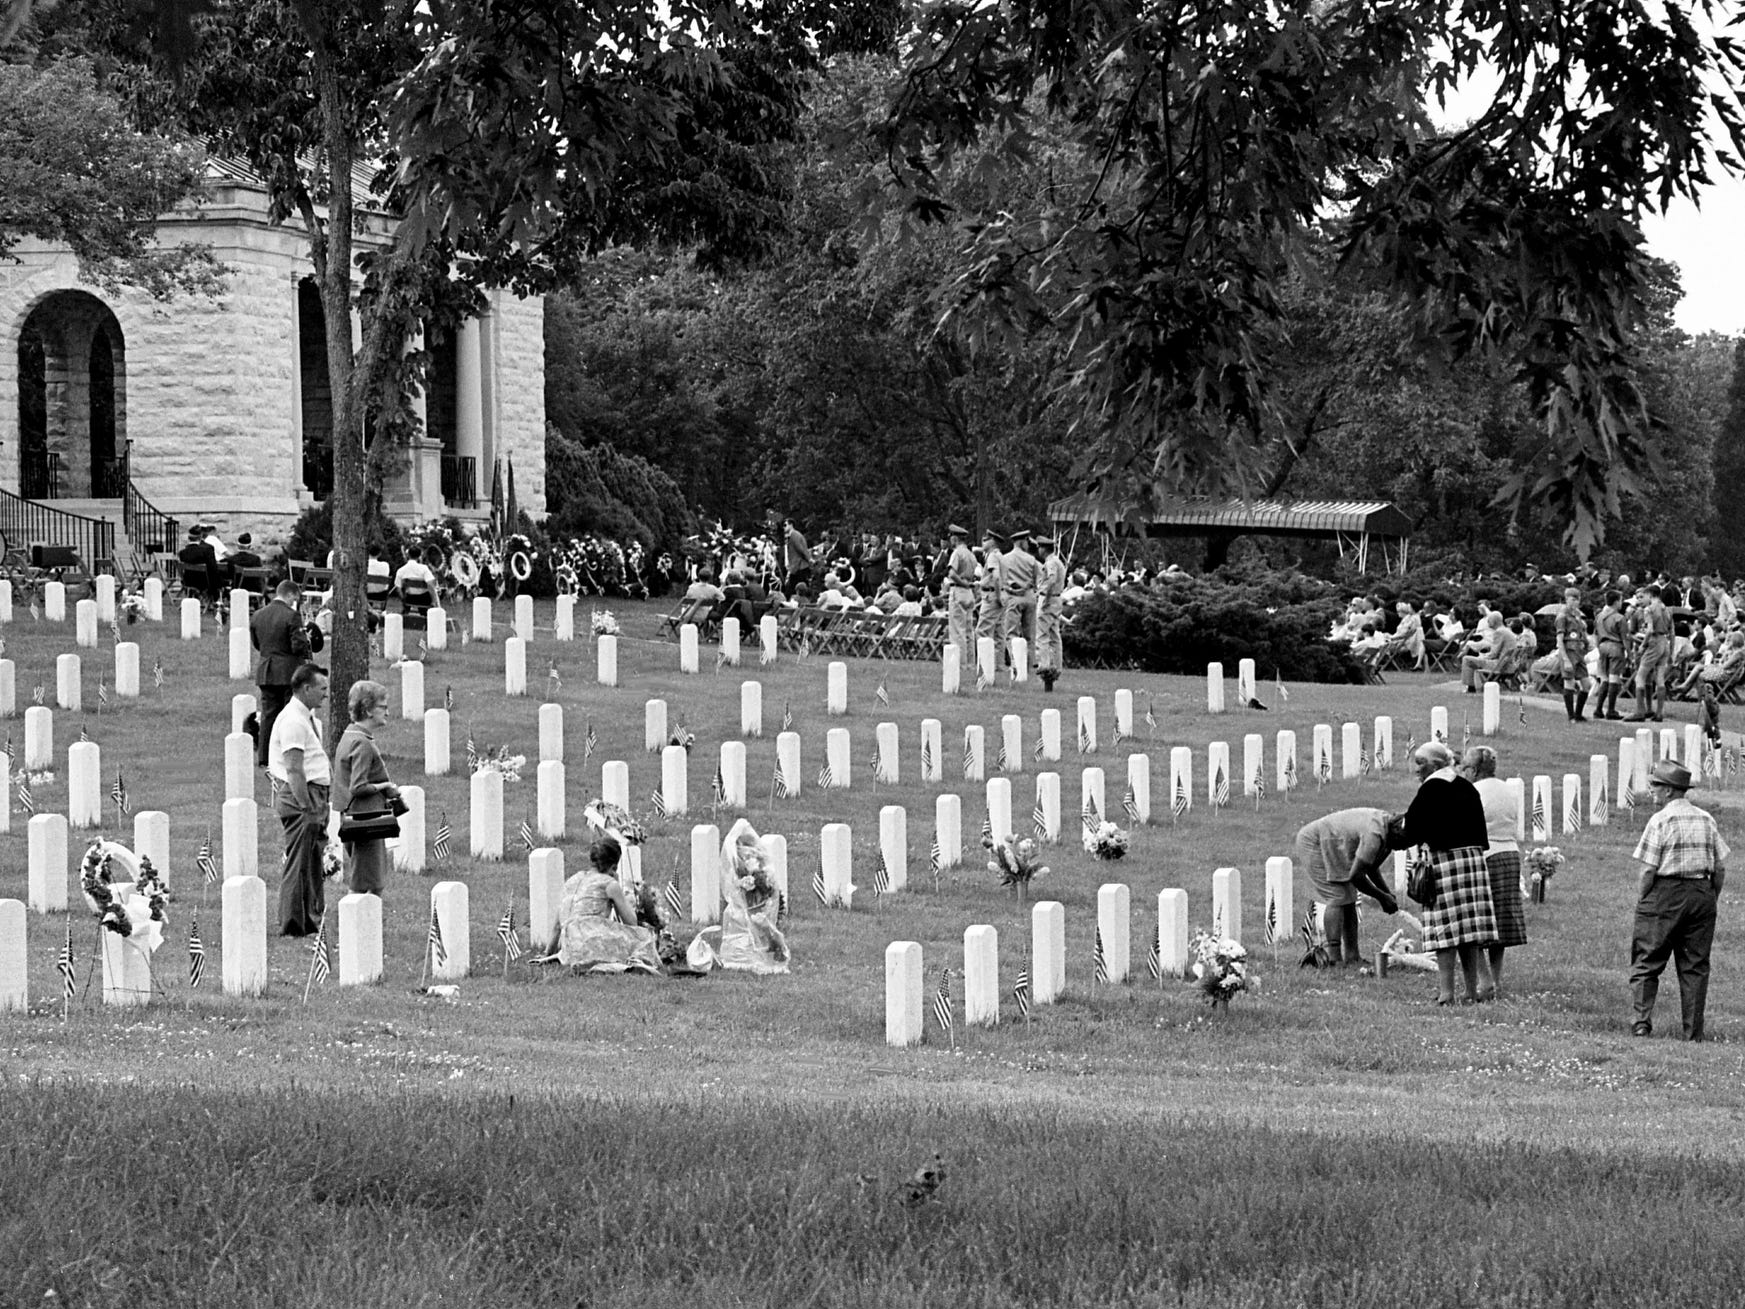 Family members visit the graves of their loved ones as others wait for the start of Memorial Day services at the National Cemetery on Gallatin Road on May 30, 1968.